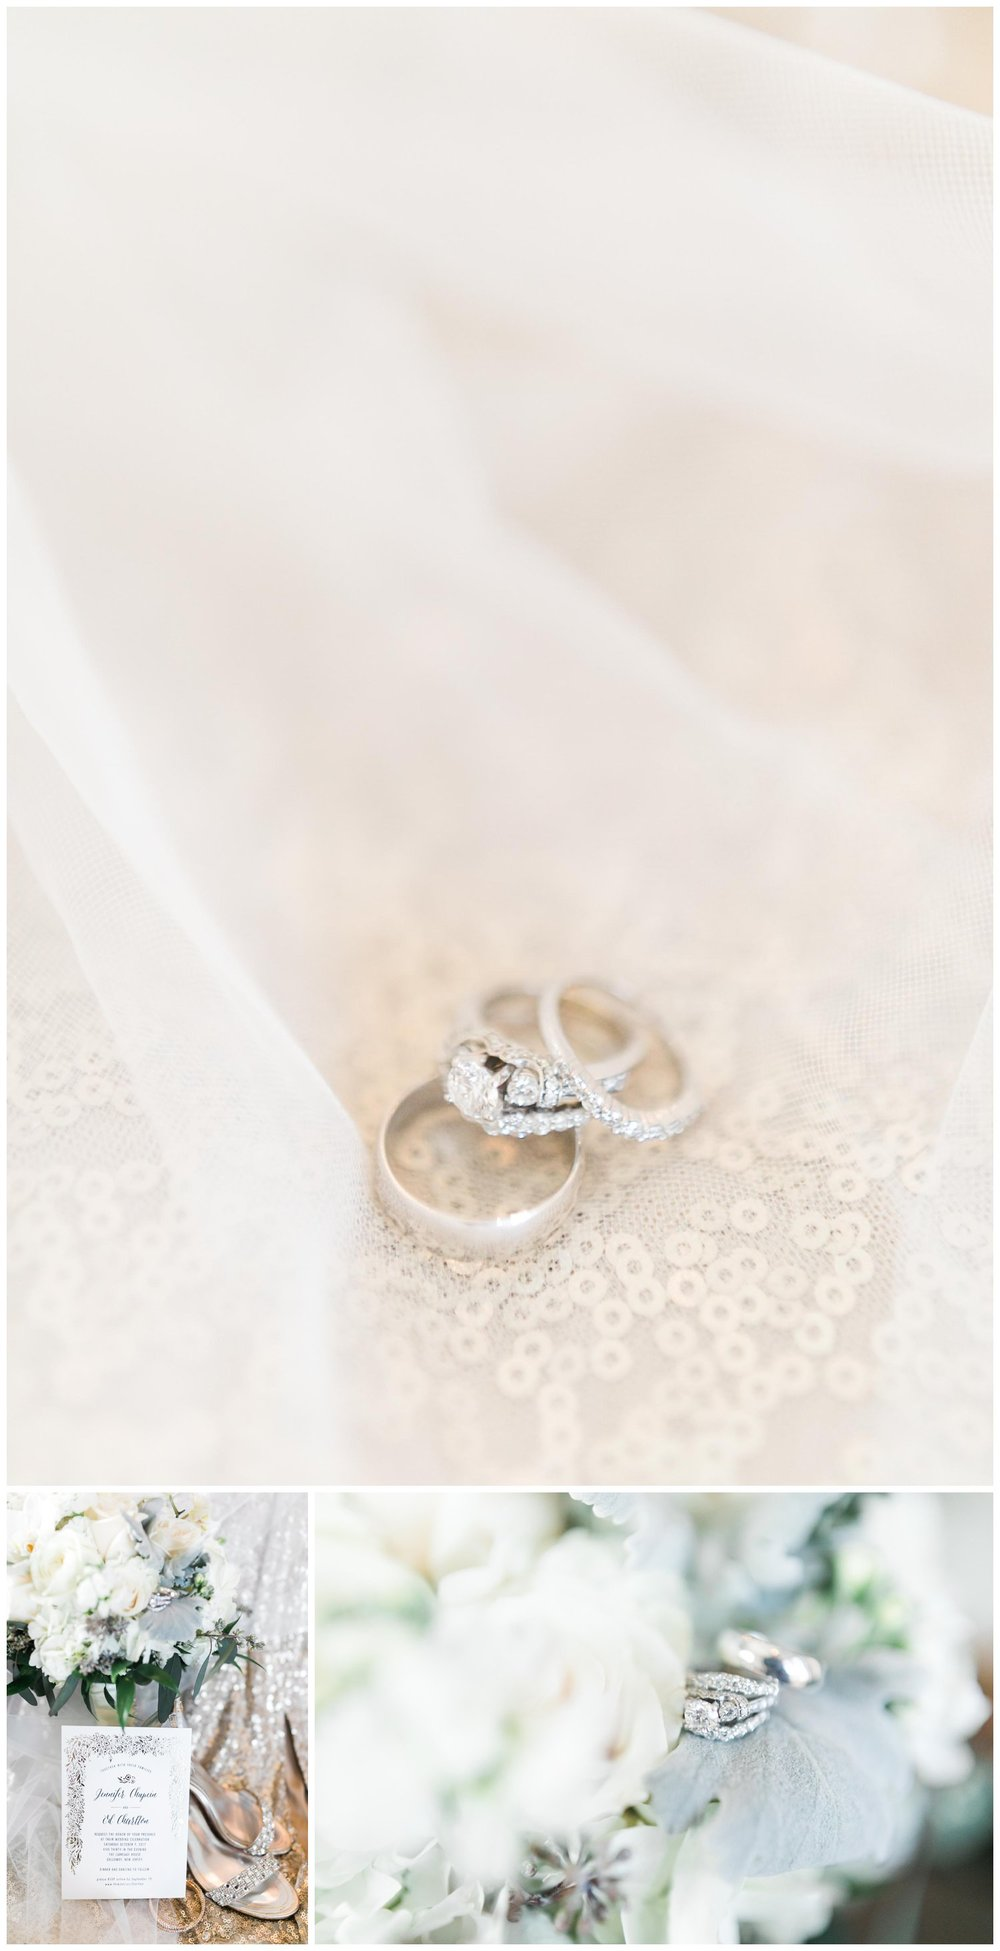 JenandEd_NewJerseyWedding_CarriageHouse_Galloway_NJ__SouthJersey_Wedding_Photographer_MagdalenaStudios_0246.jpg